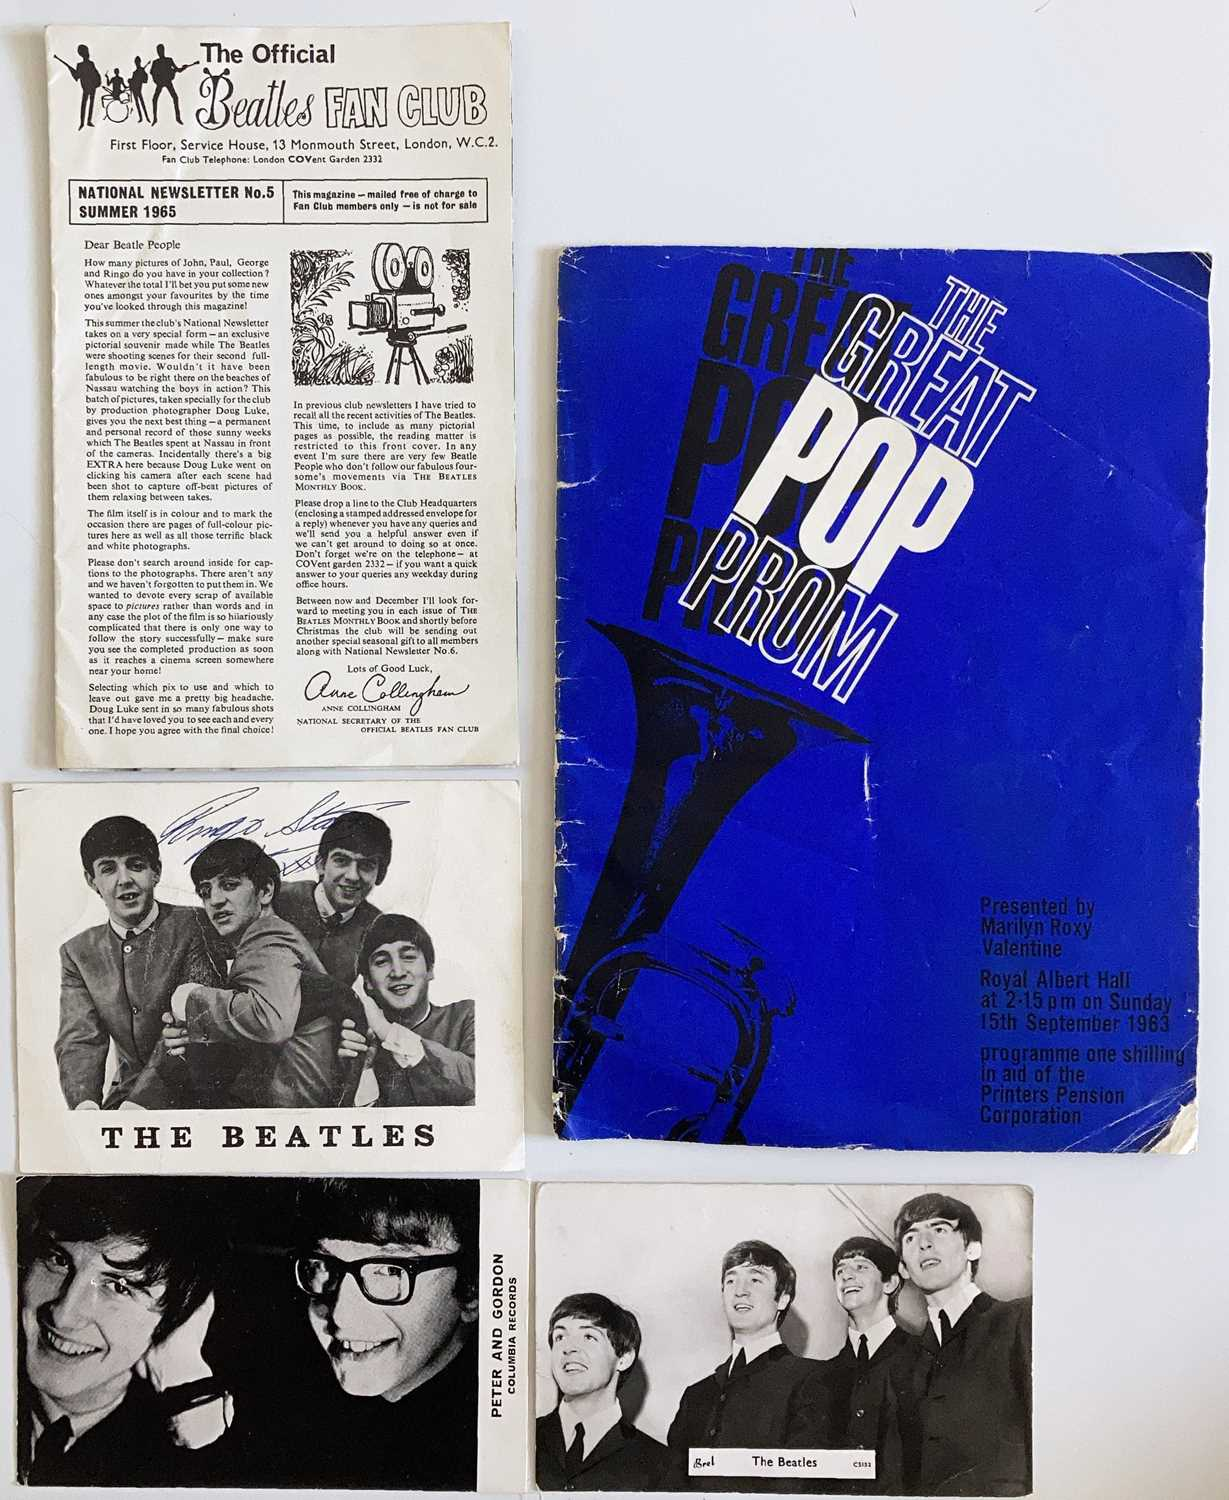 THE GREAT POP PROM PROGRAMME - SIGNED RINGO STARR CARD.